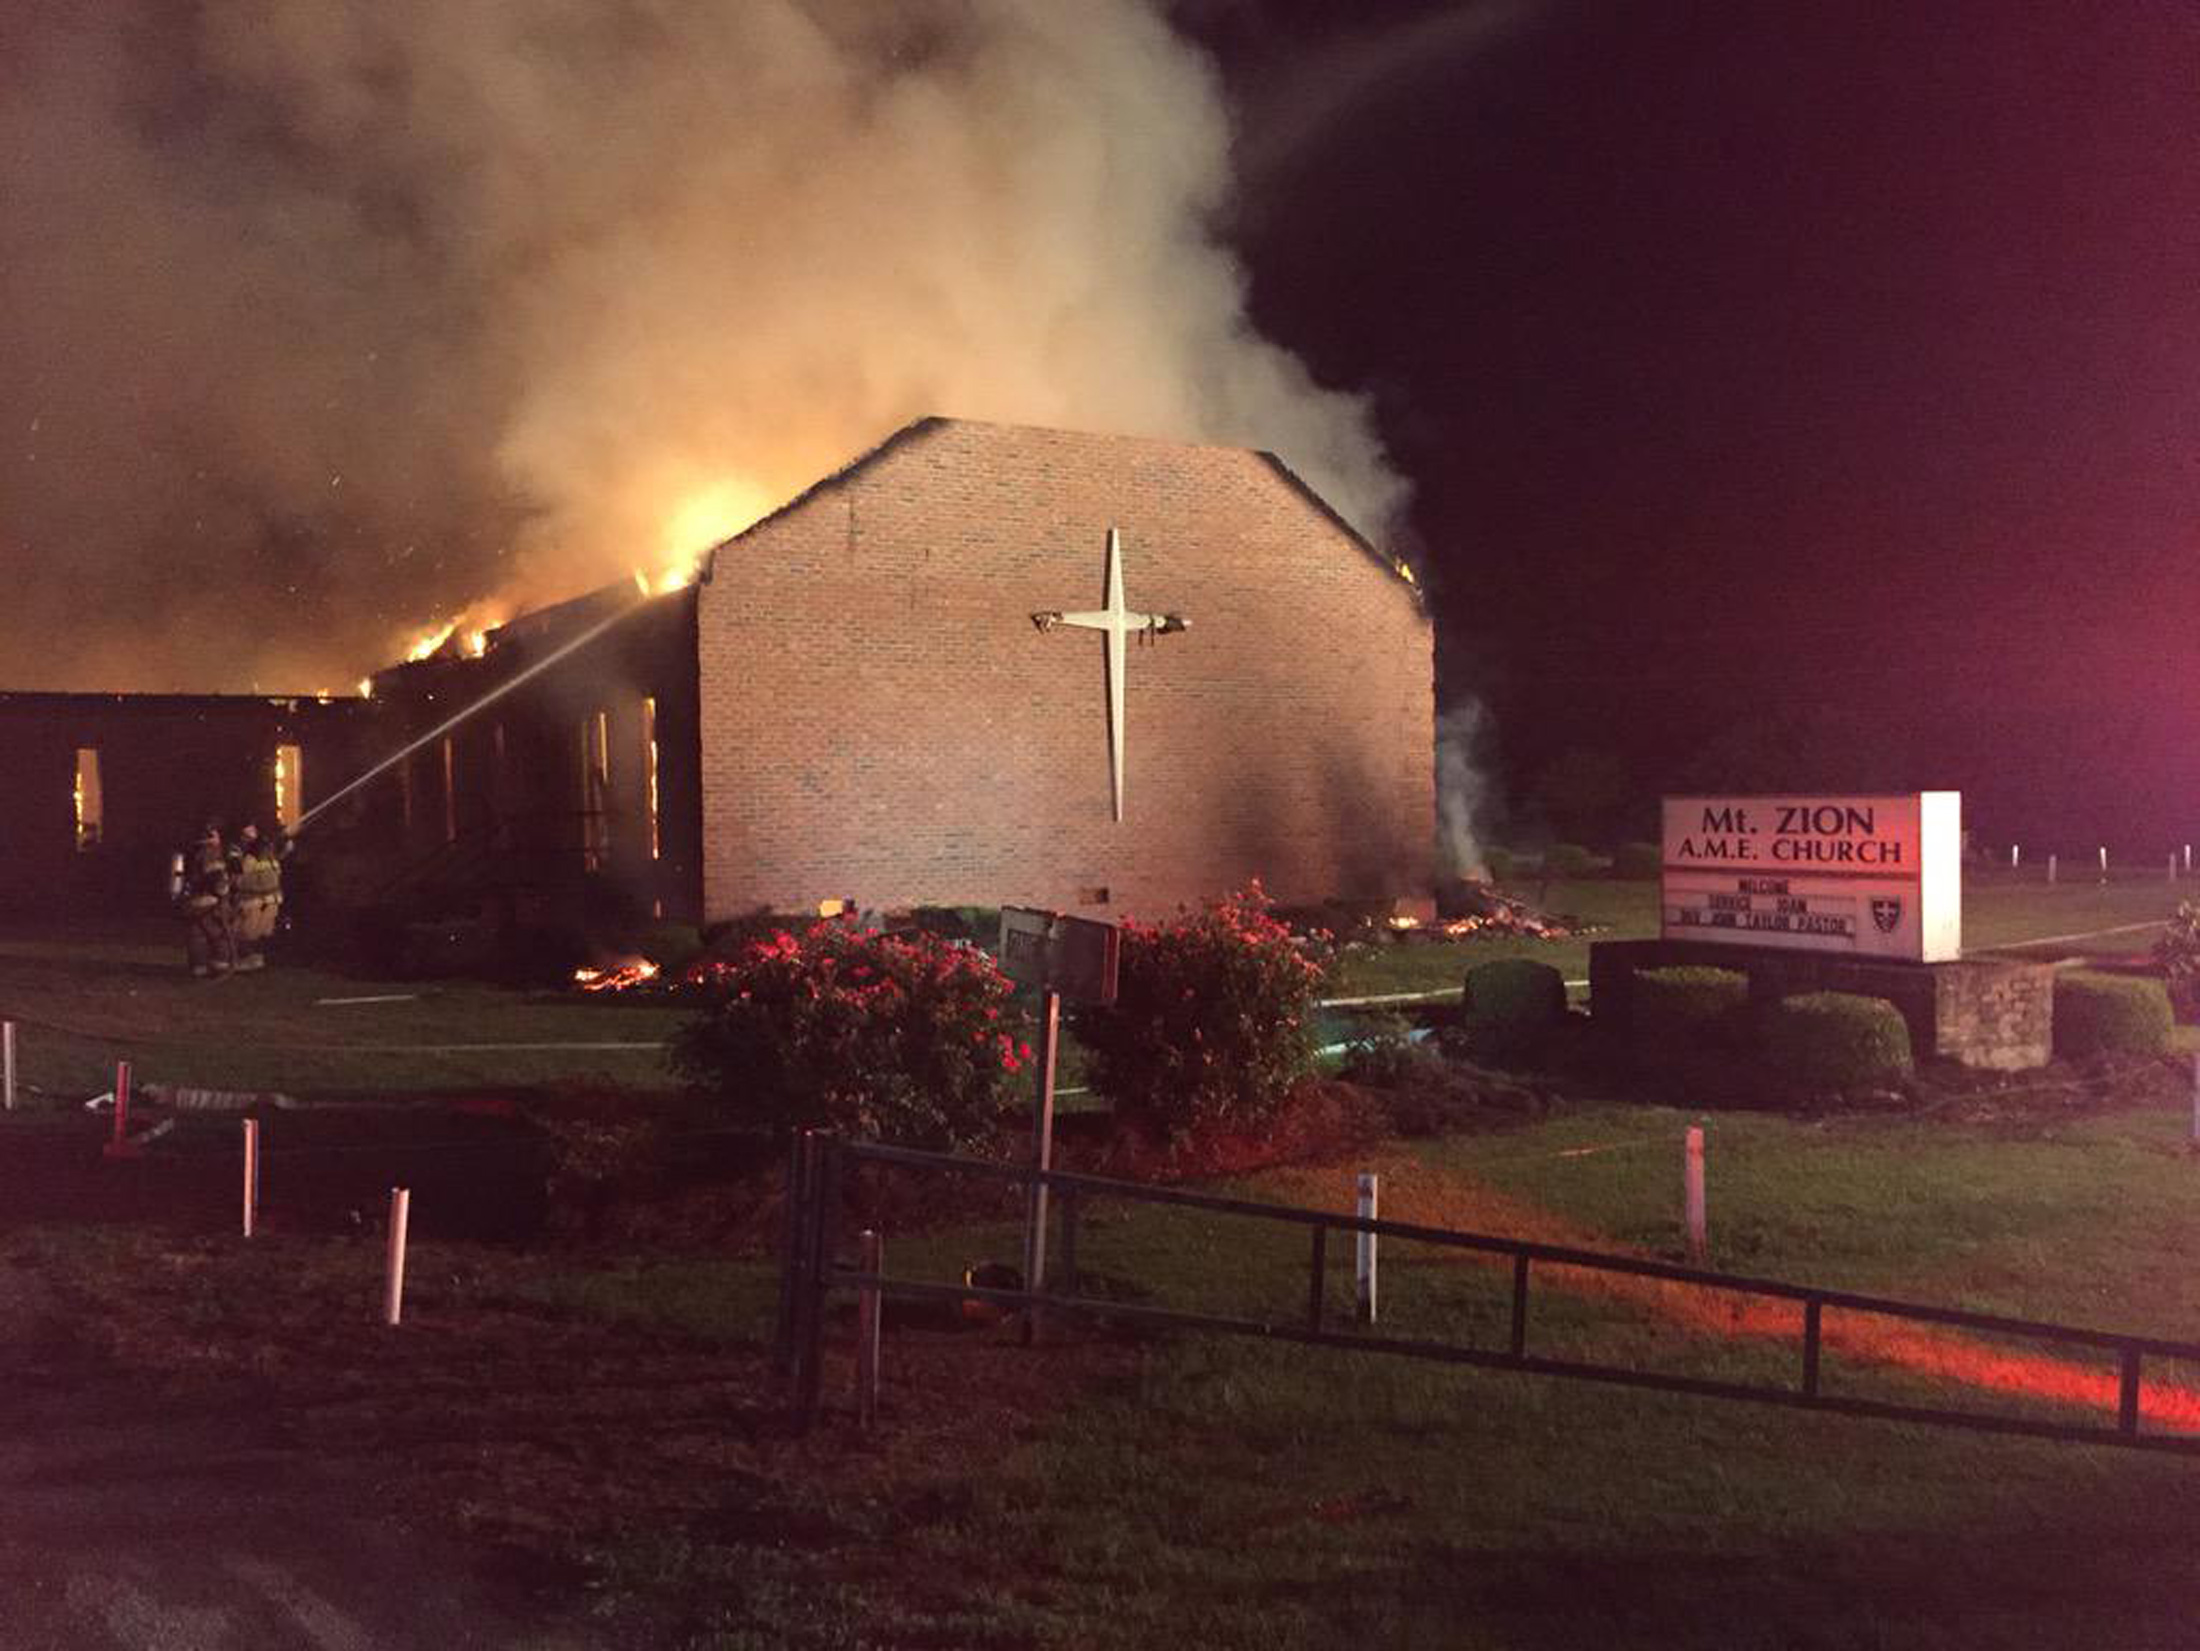 Fire crews try to control a blaze at the Mt. Zion African Methodist Episcopal Church in Greeleyville, S.C., on the night of June 30, 2015